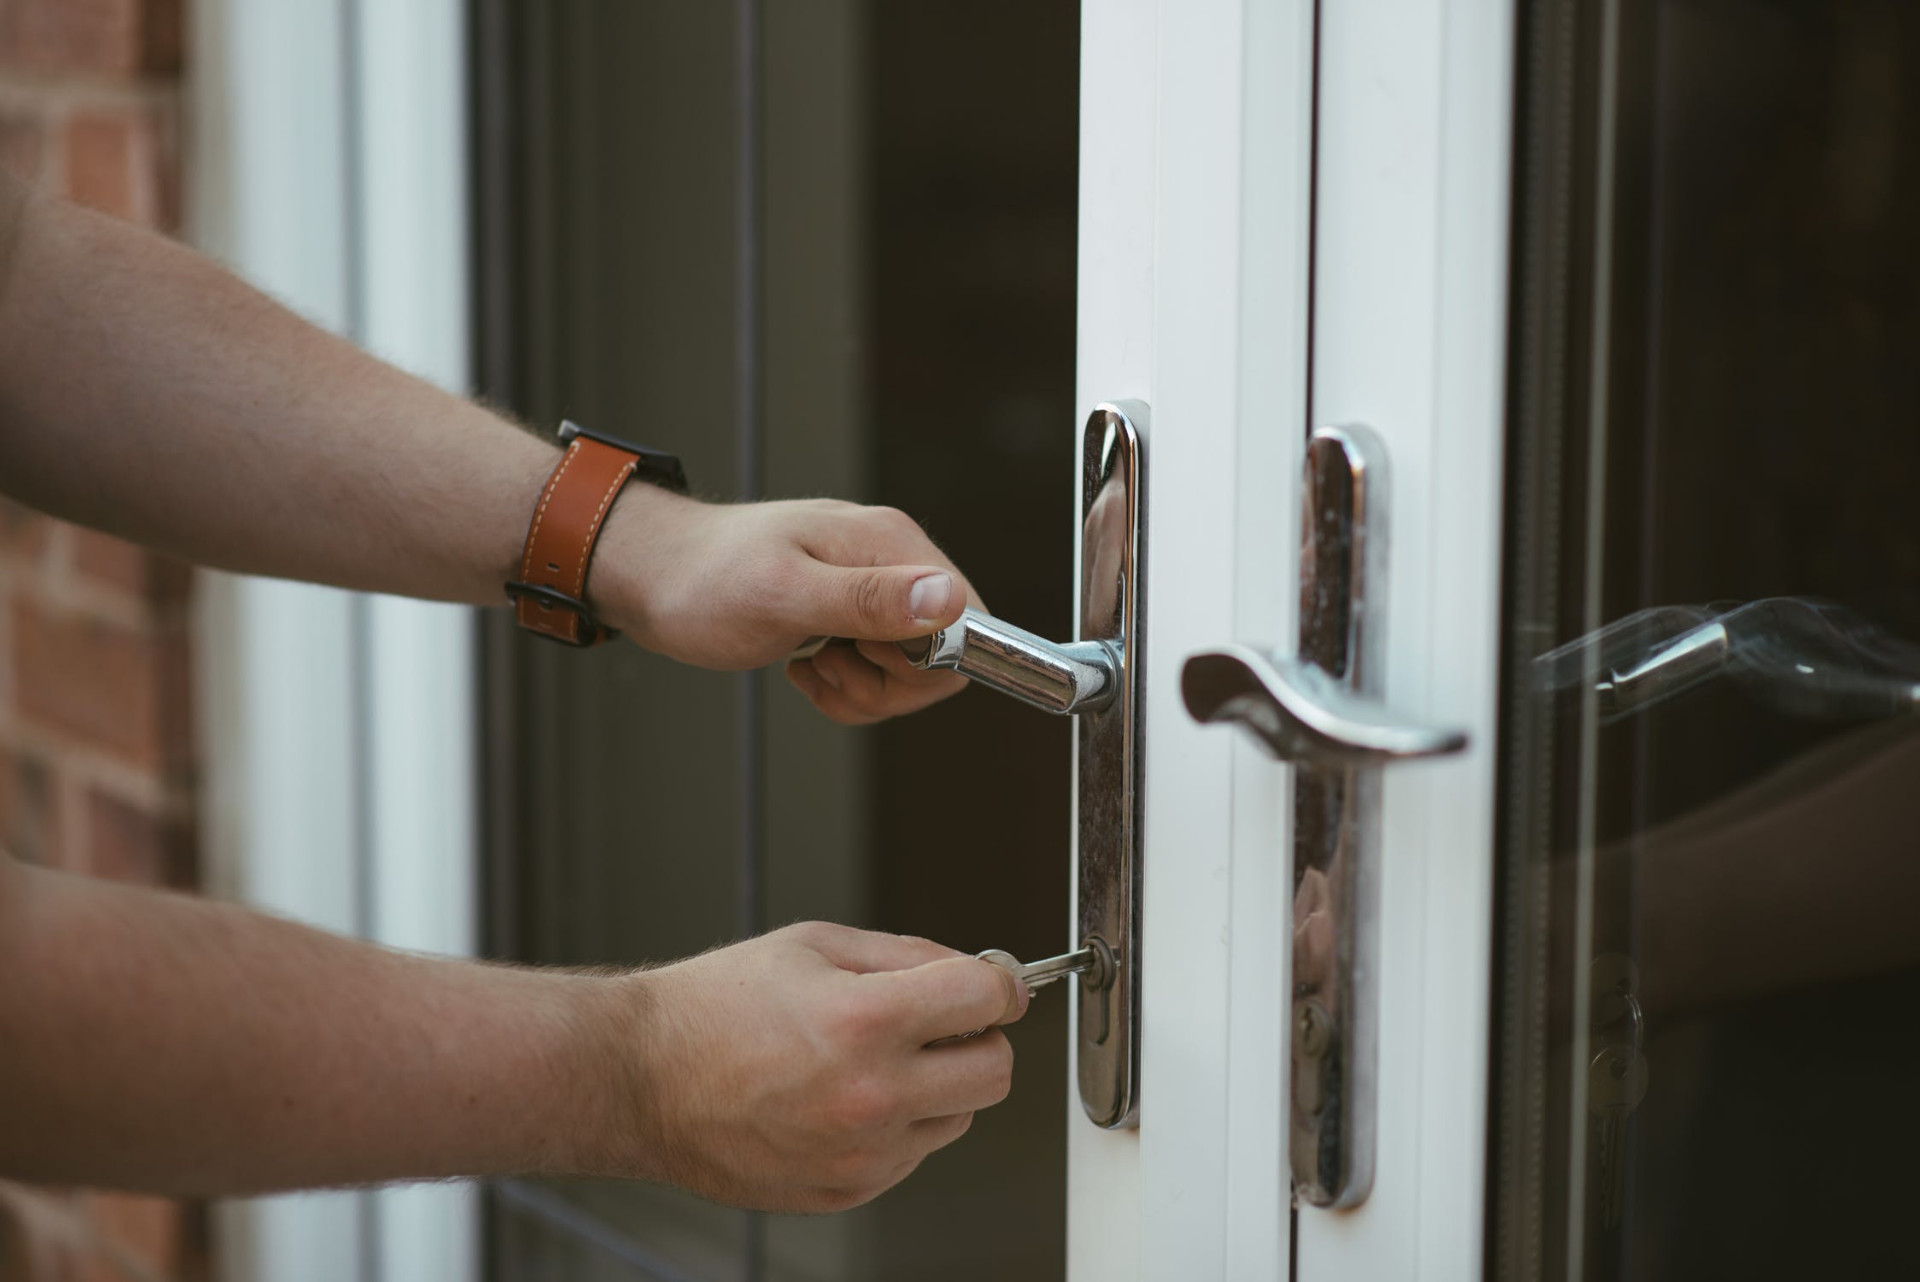 How to Open Your Home Lock Without a Key